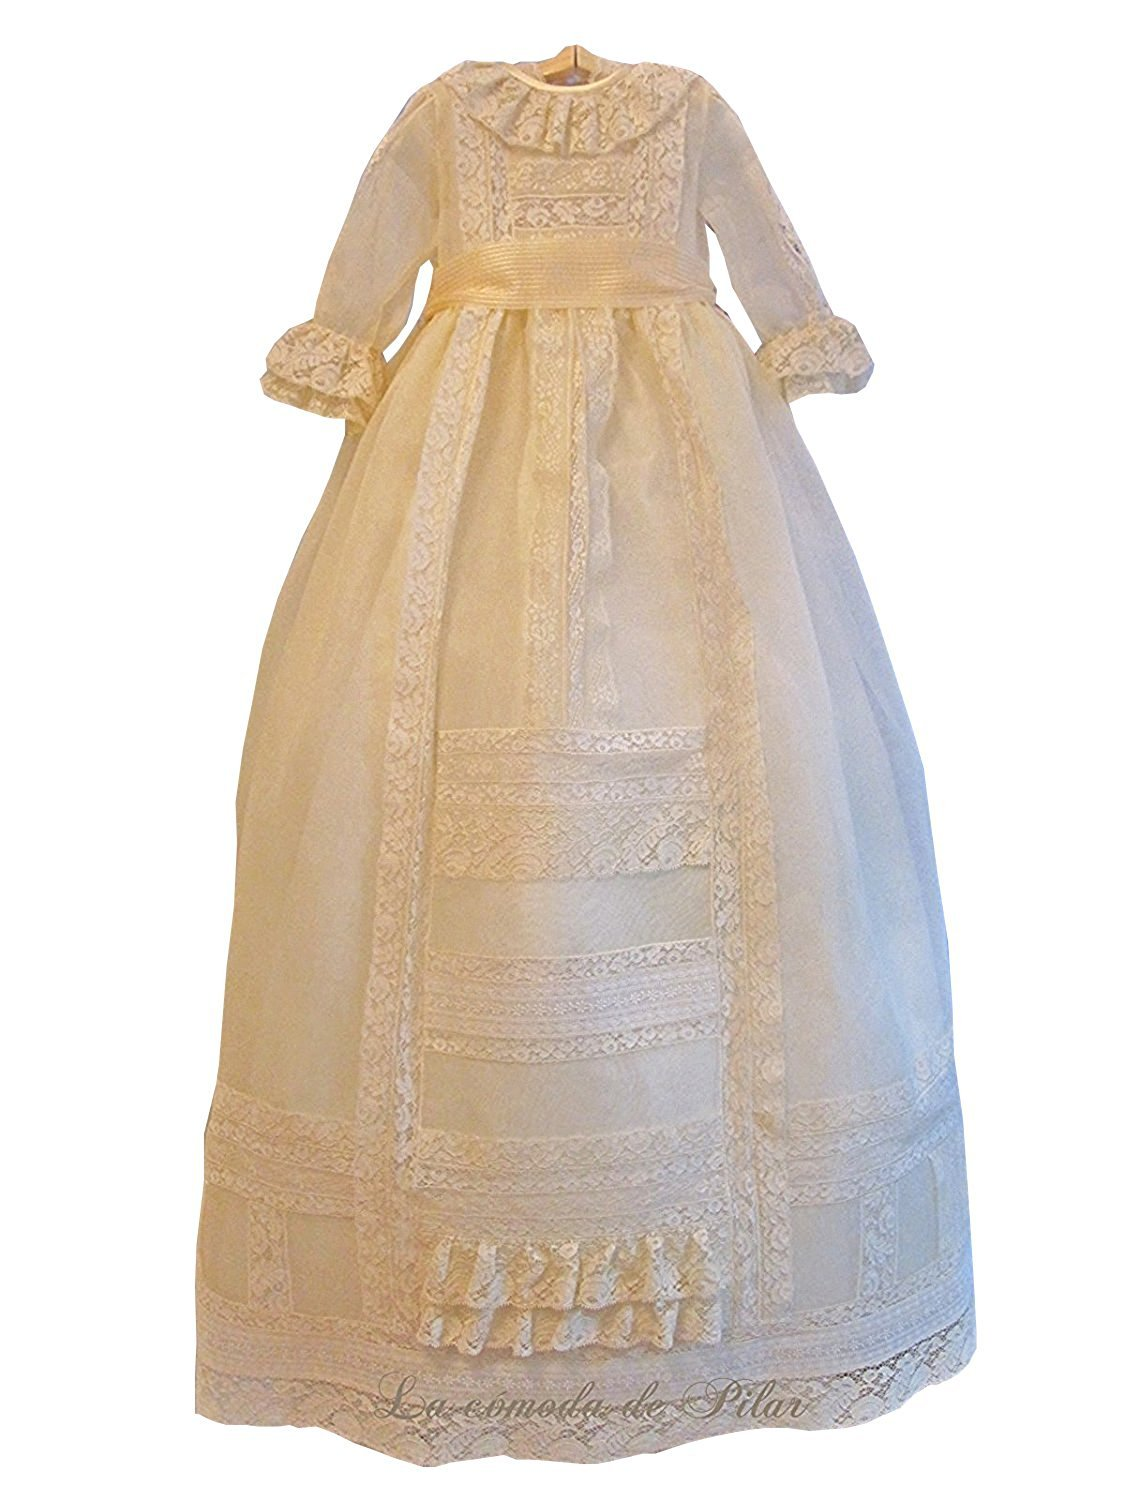 Banfvting Lace Long Baby Girls Dress Christening Gowns With Sleeves by Banfvting (Image #1)